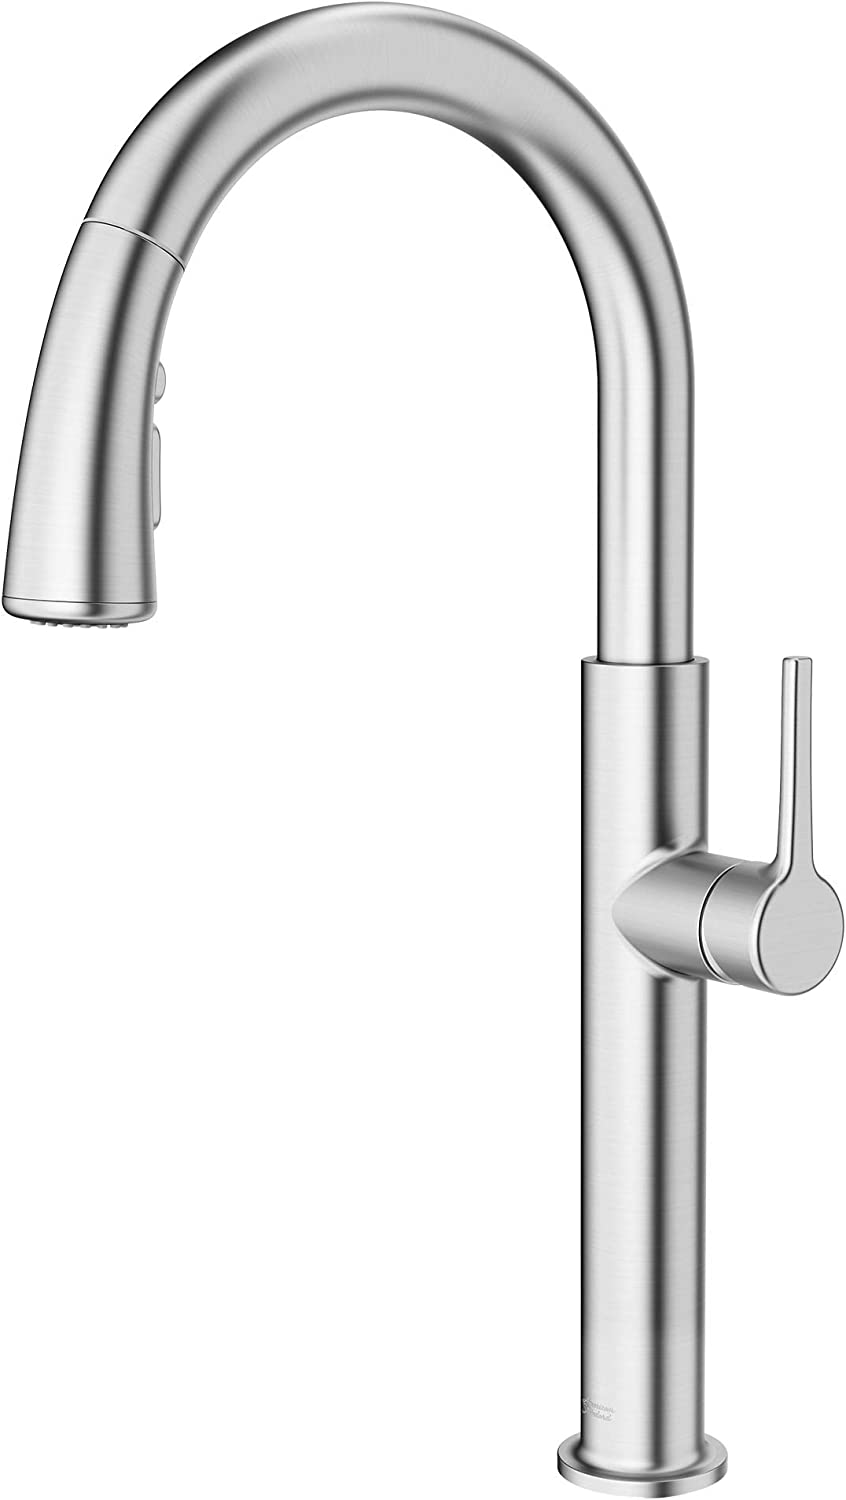 American Standard 4803300.075 Studio S Pull-Down Kitchen Faucet, Stainless Steel